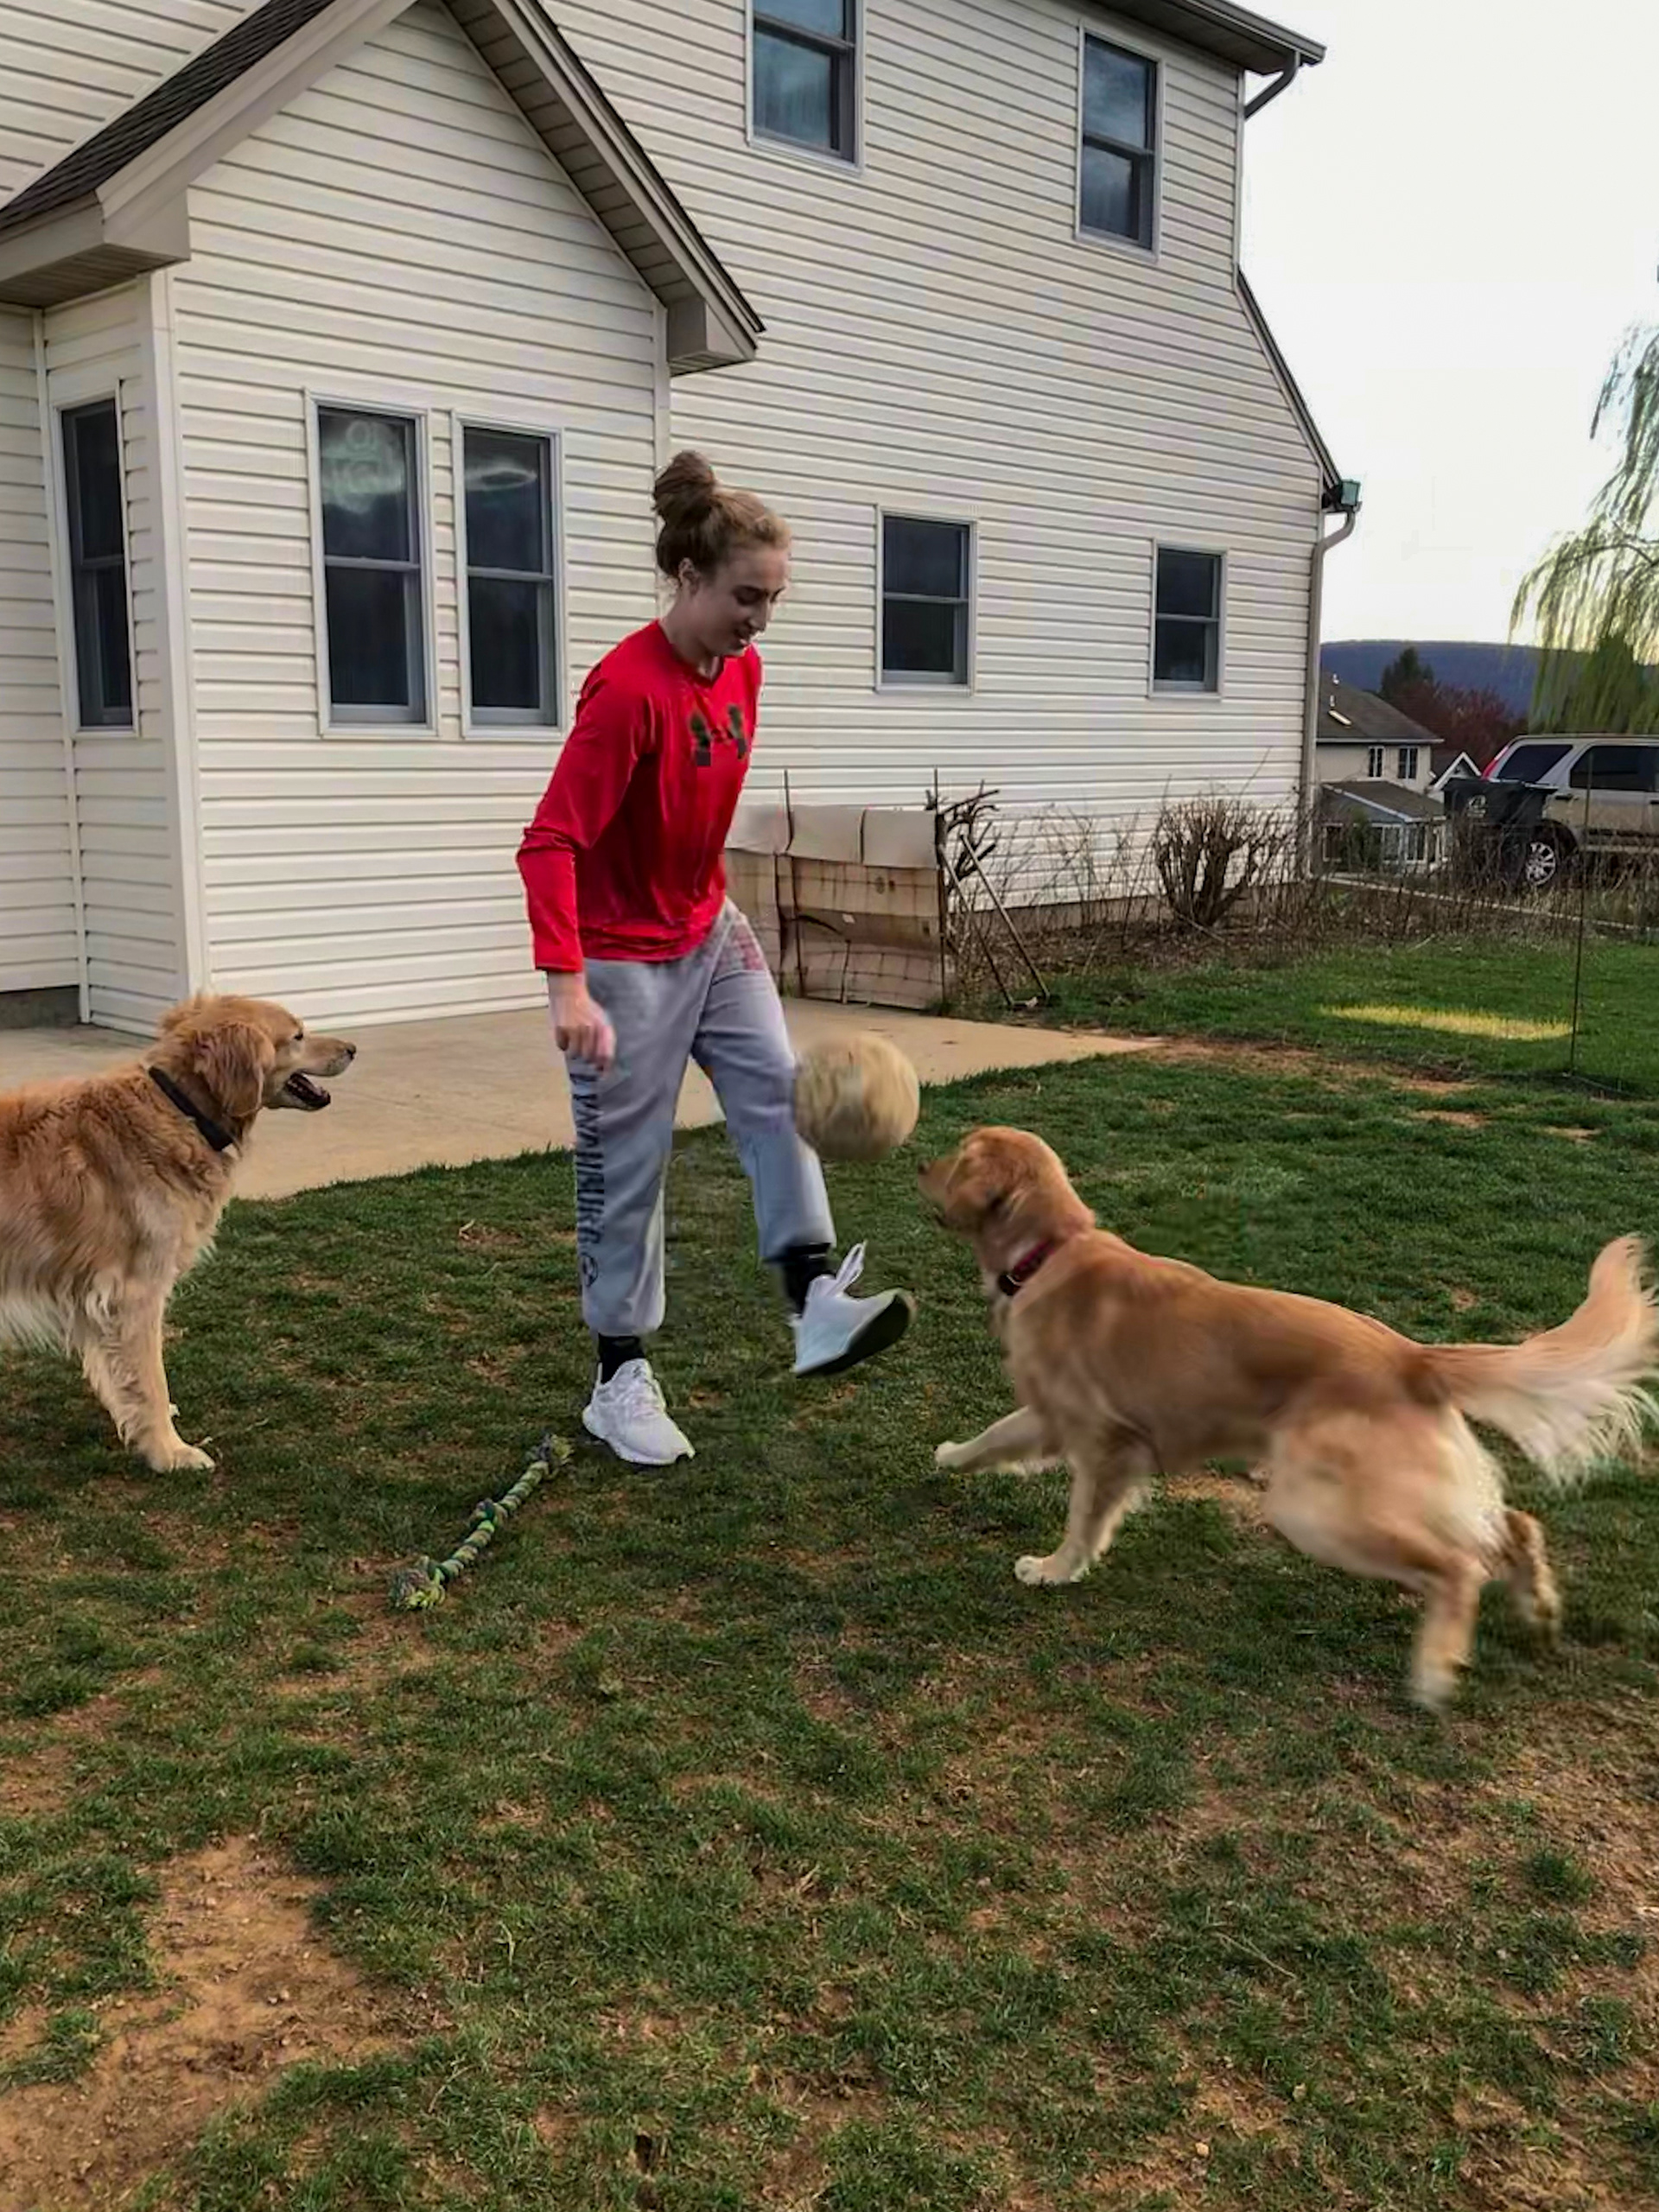 Sarah Pavlovich juggling a soccer ball in her backyard with her dogs, March 30th, 2020. Sarah Pavlovich  |  Carlisle, Pennsylvania.